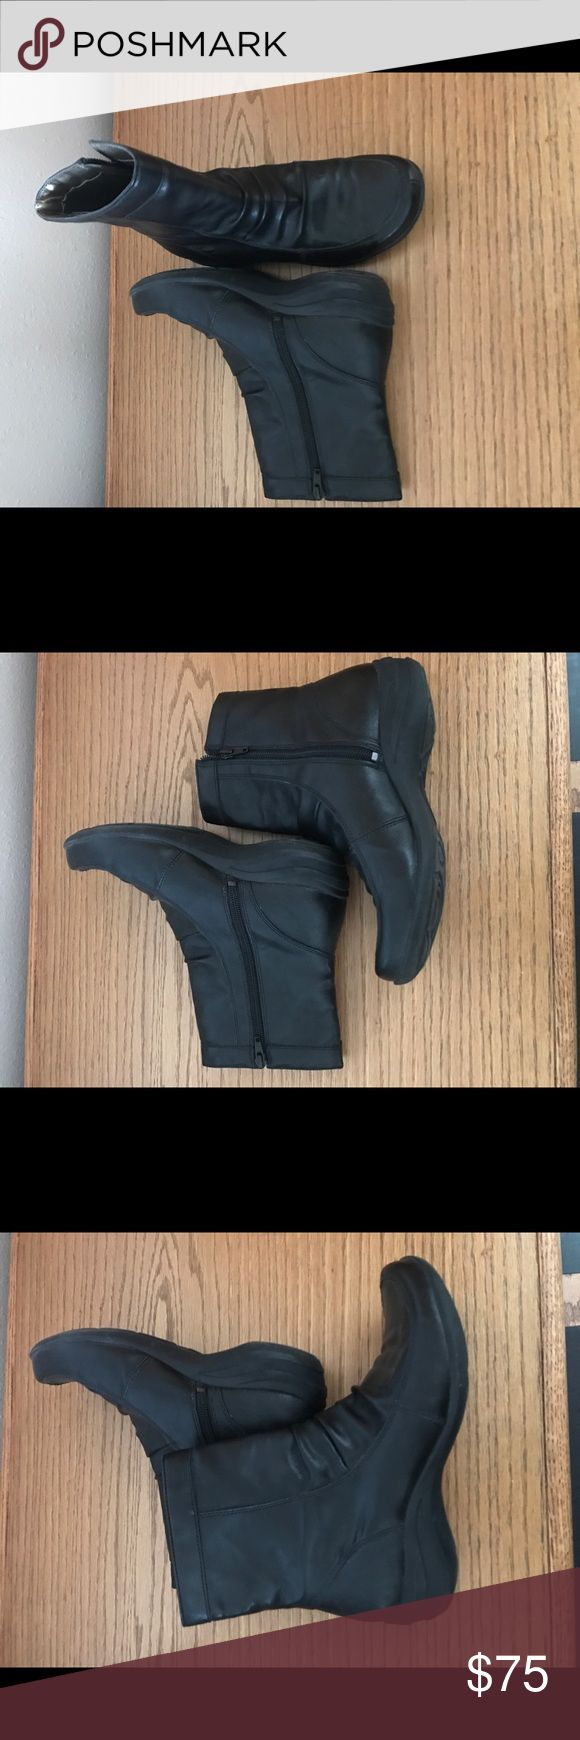 Hush Puppies Zip Side Booties NWOT..Super Soft, Comfy and Feel Like a Slipper! Perfect Condition and a Black Boot Staple, Every Closet Must Have! Hush Puppies Shoes Ankle Boots & Booties